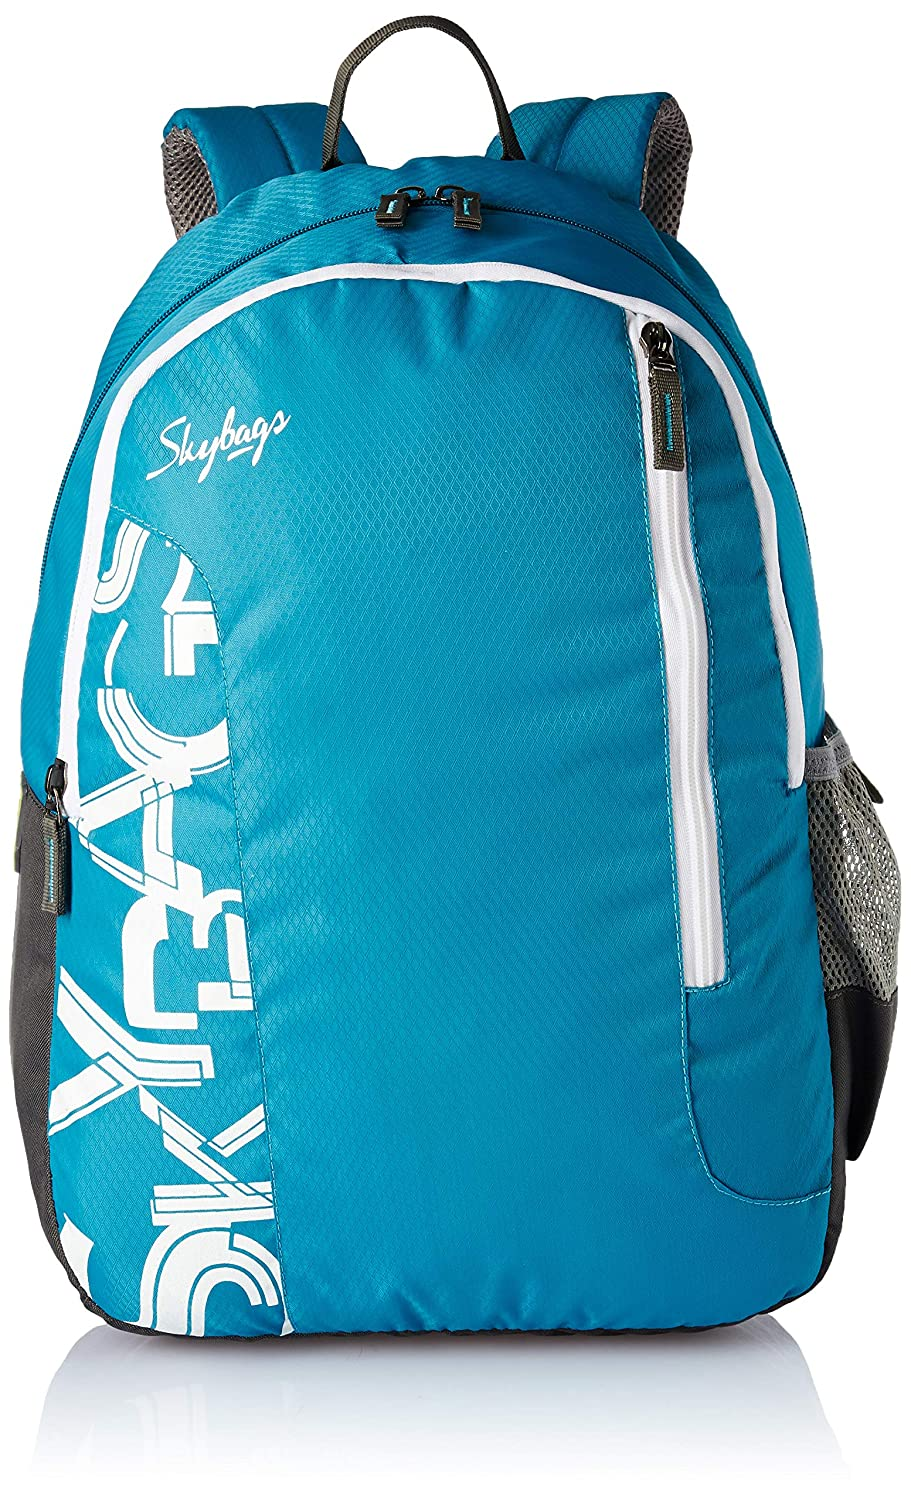 Skybags Brat 10 Blue 25 ltrs Casual Backpack